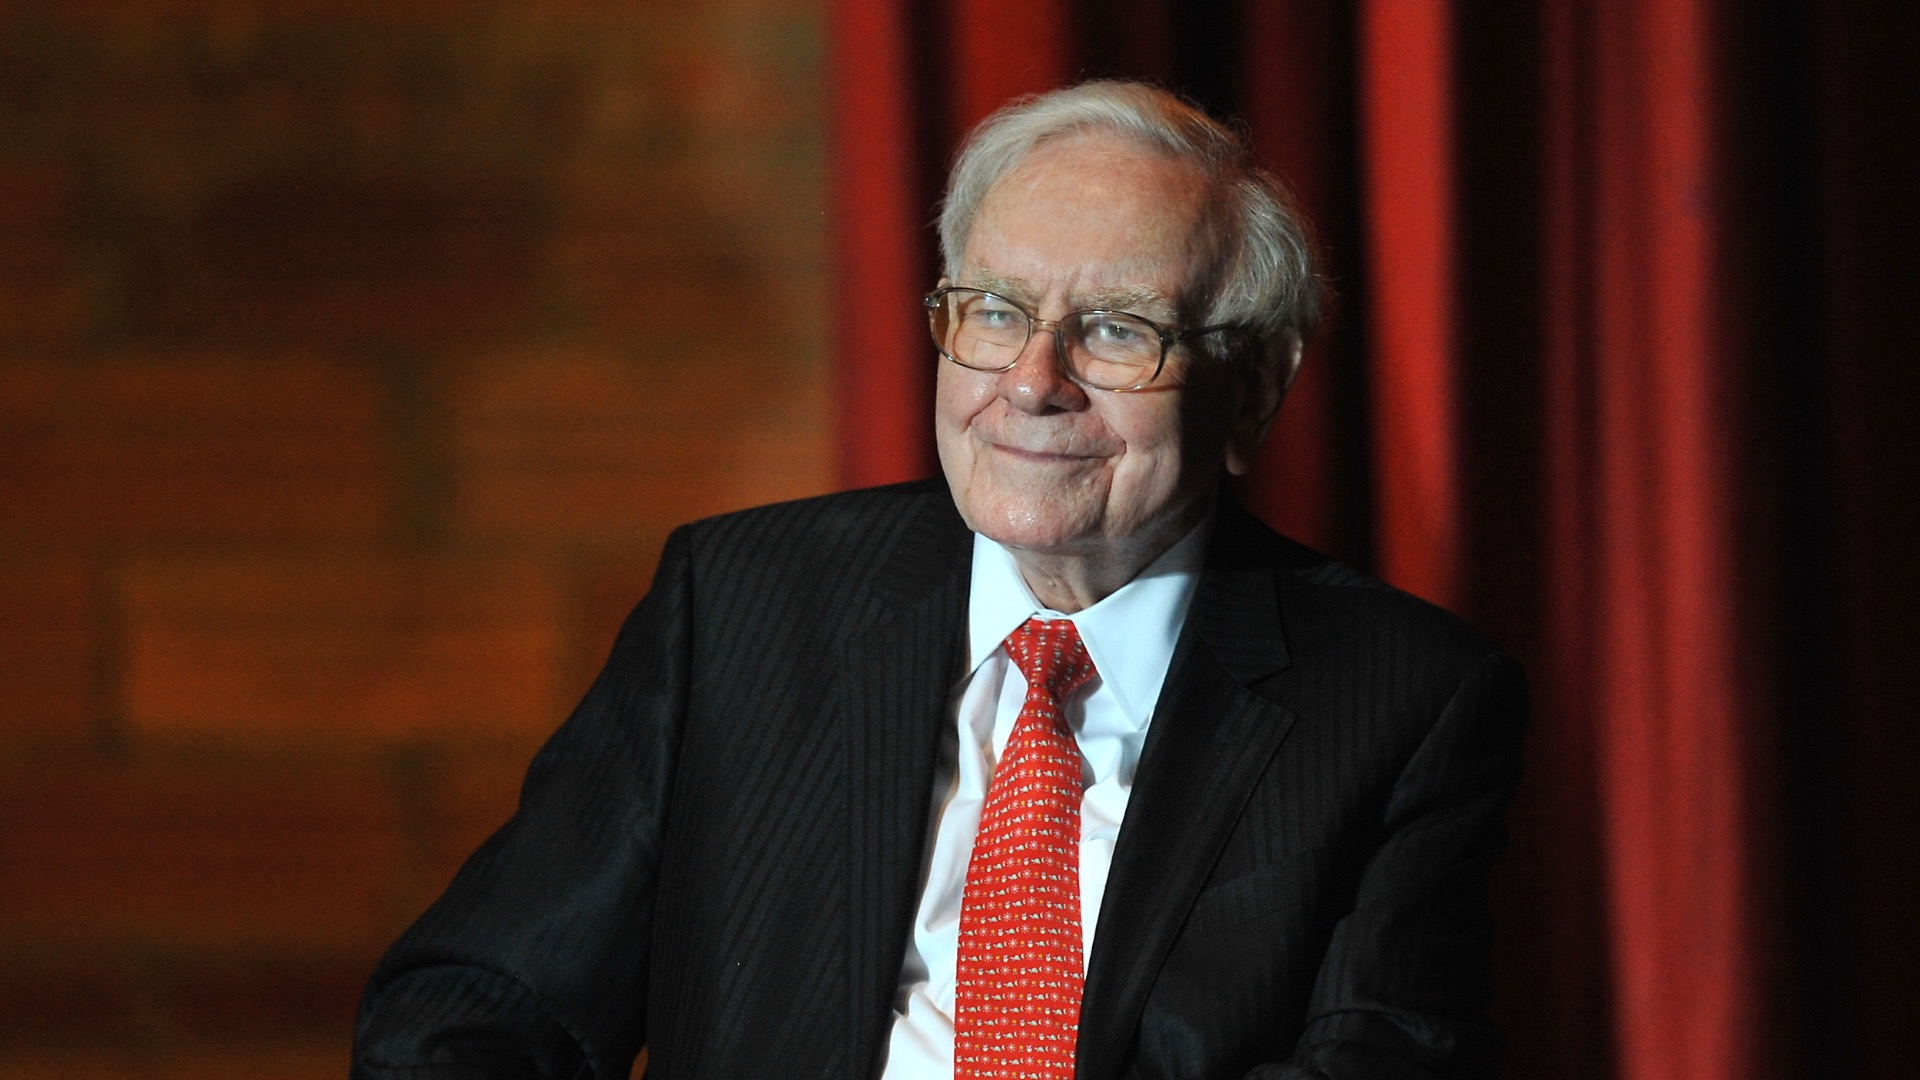 Warren Buffett's retirement plan in 25 seconds